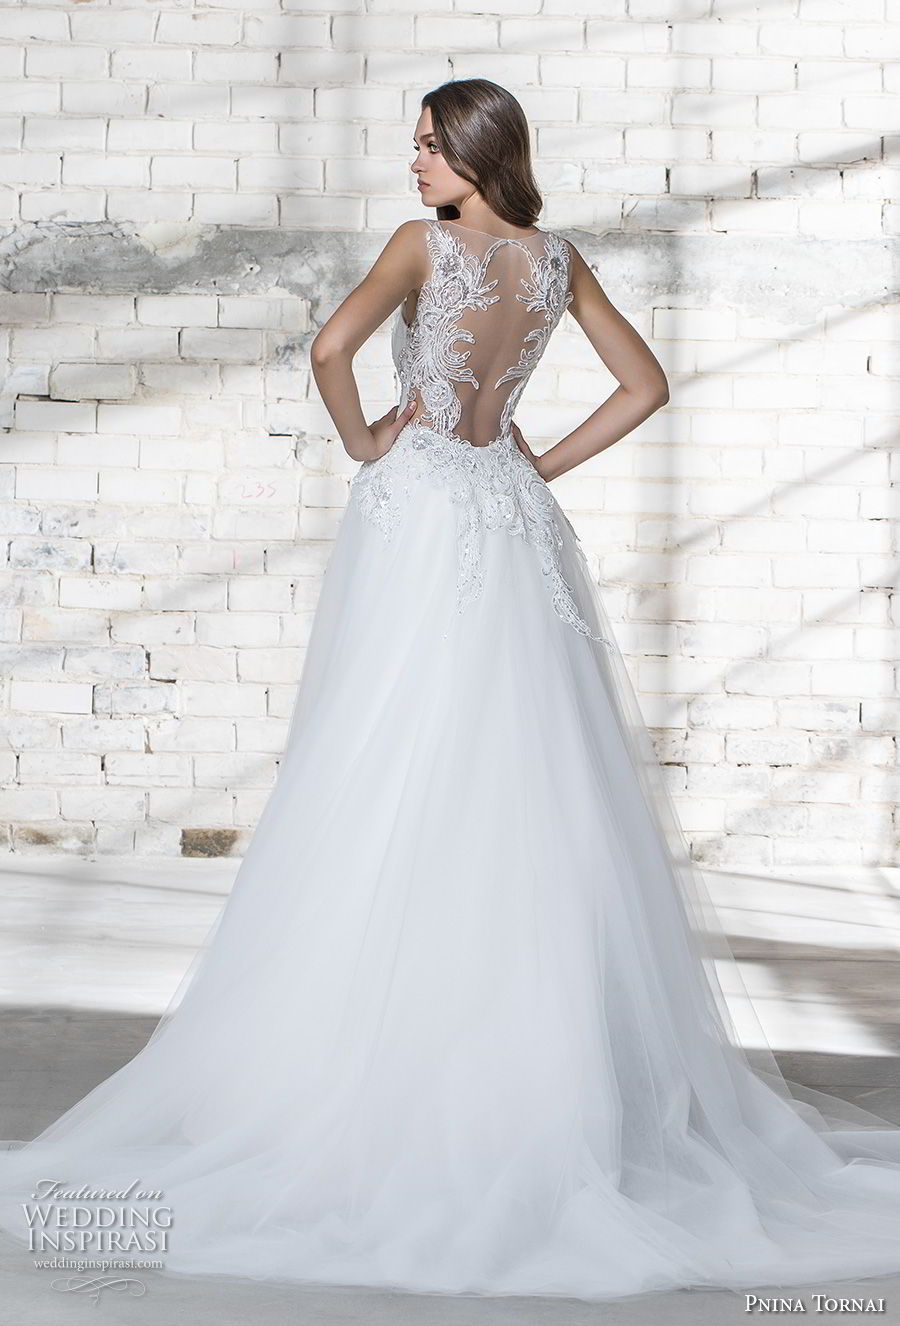 pnina tornai 2019 love bridal strapless deep plunging sweetheart neckline heavily embellished bodice glitzy romantic sheath wedding dress a line overskirt sheer lace back chapel train (1) bv